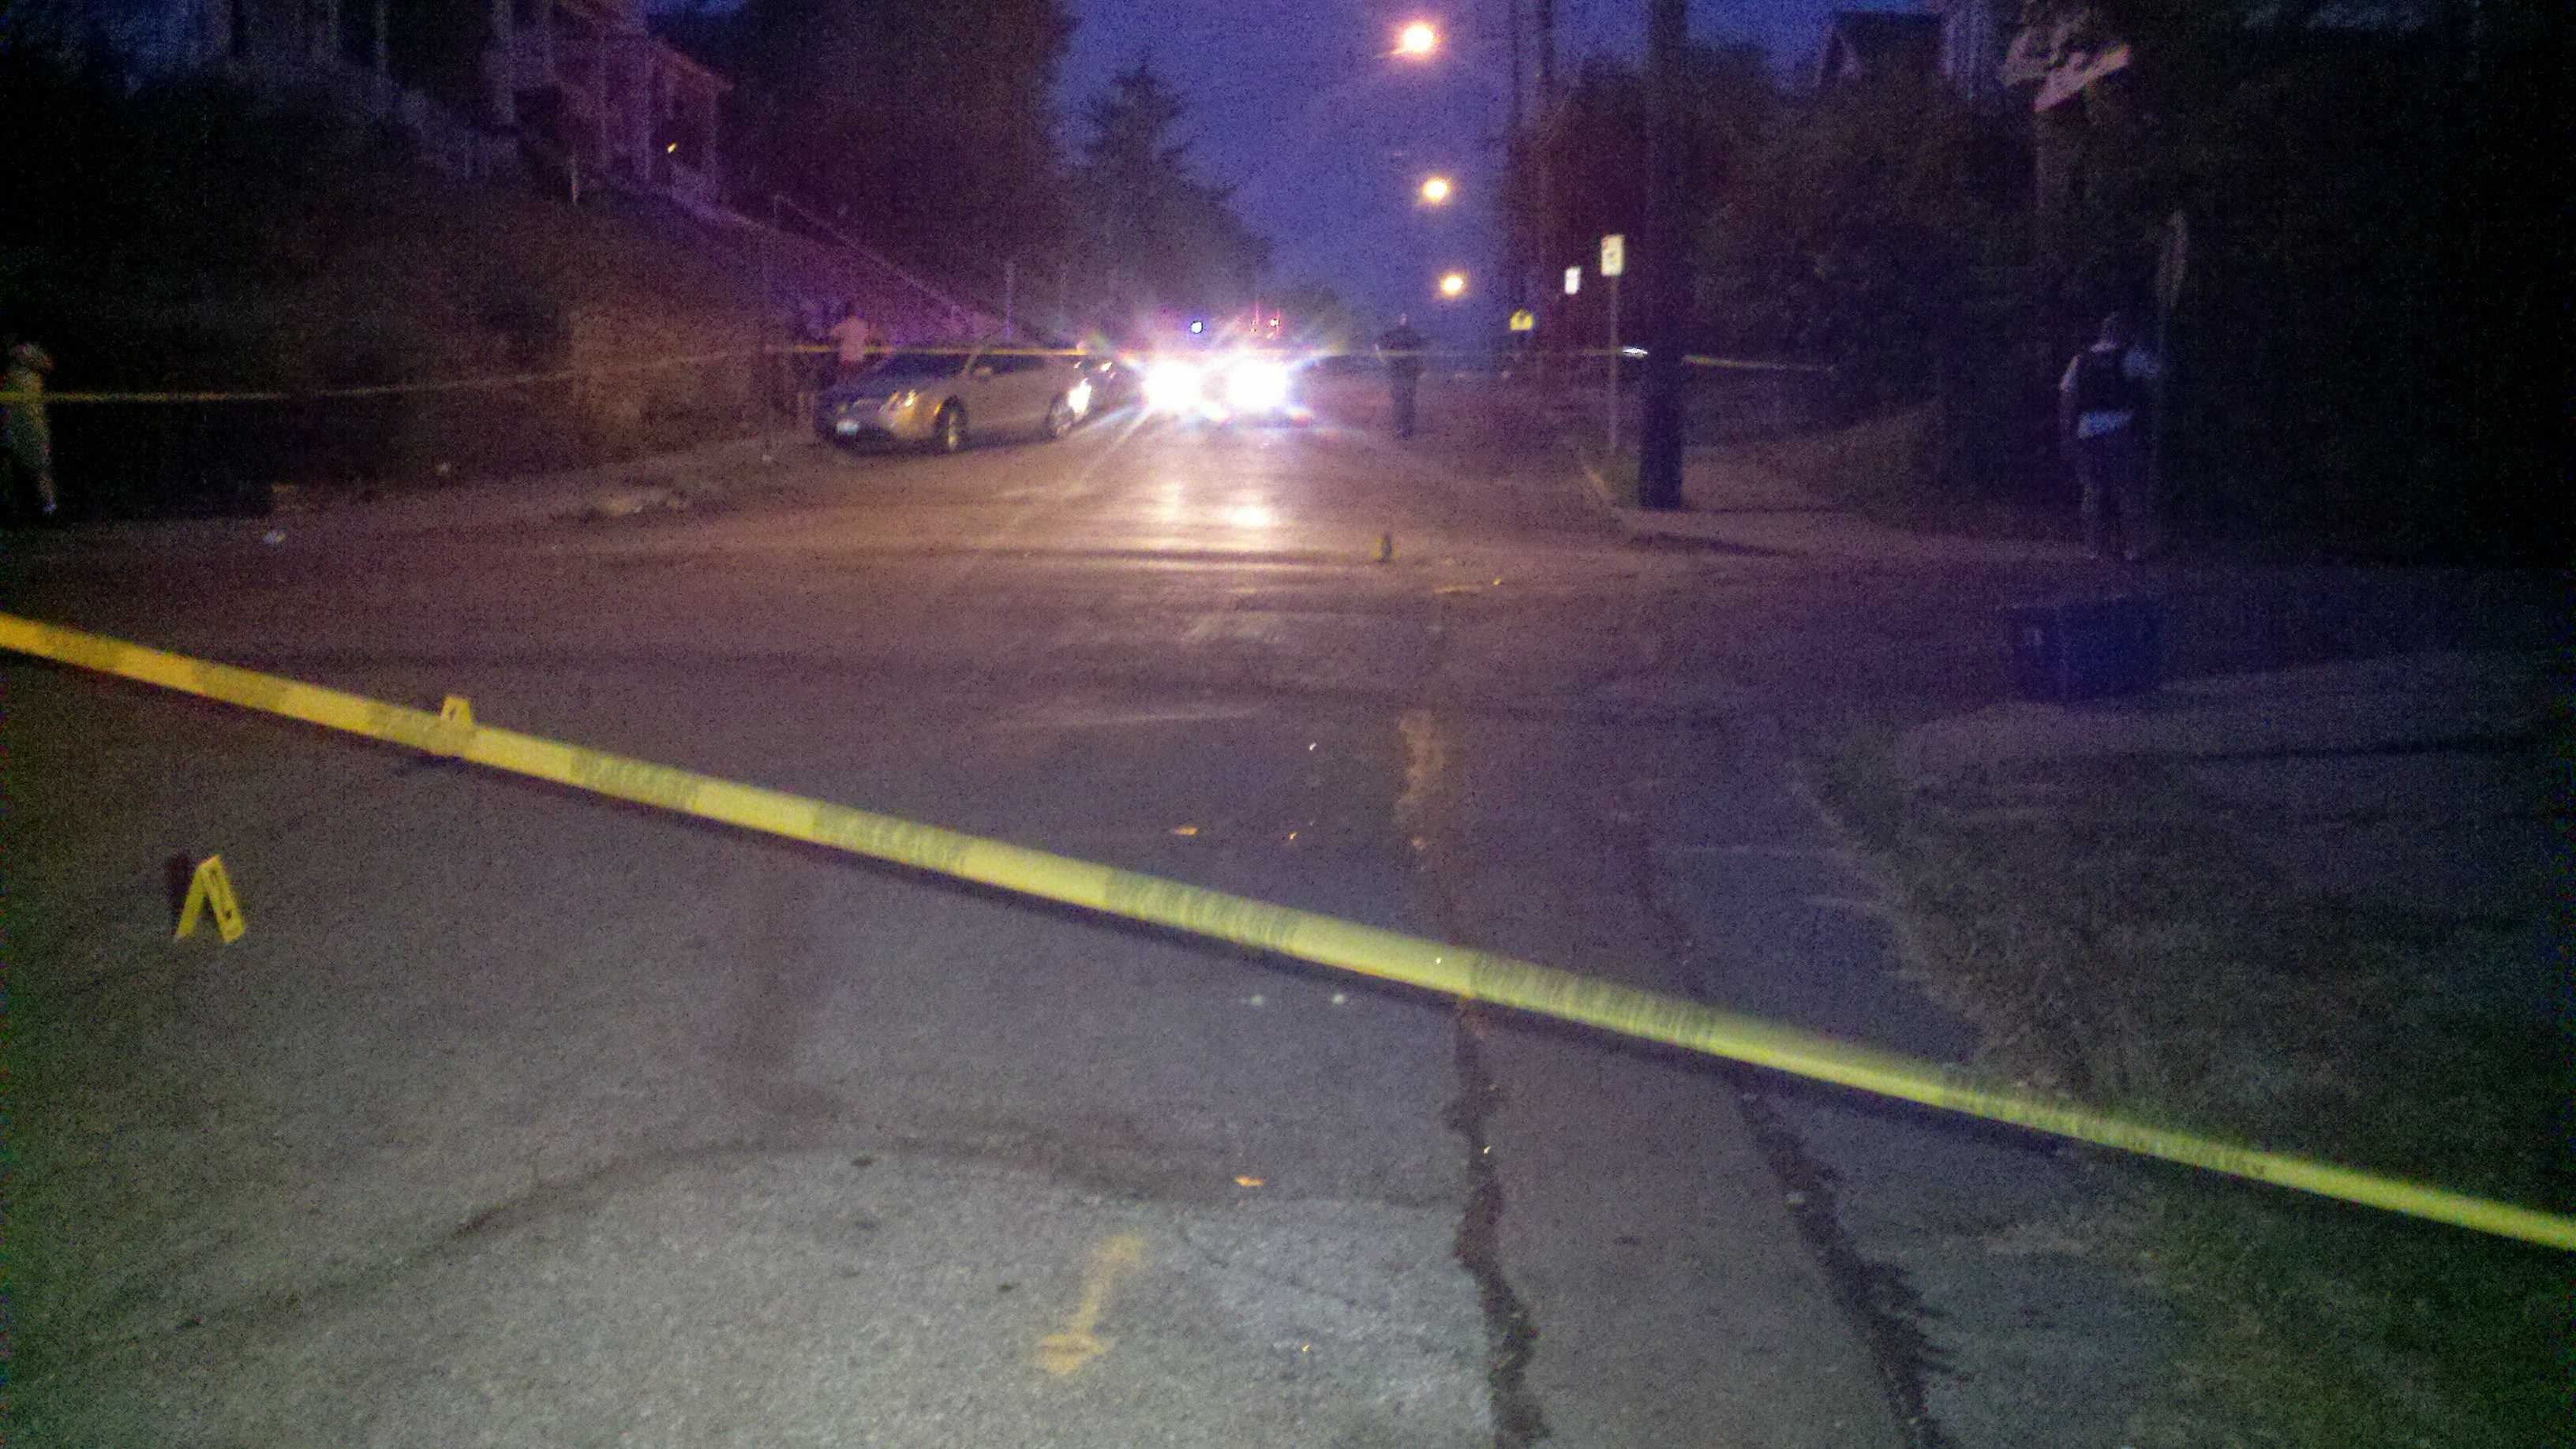 Police are searching for two vehicles involved in a shootout in West Price Hill, during which a 13-year-old girl was struck.